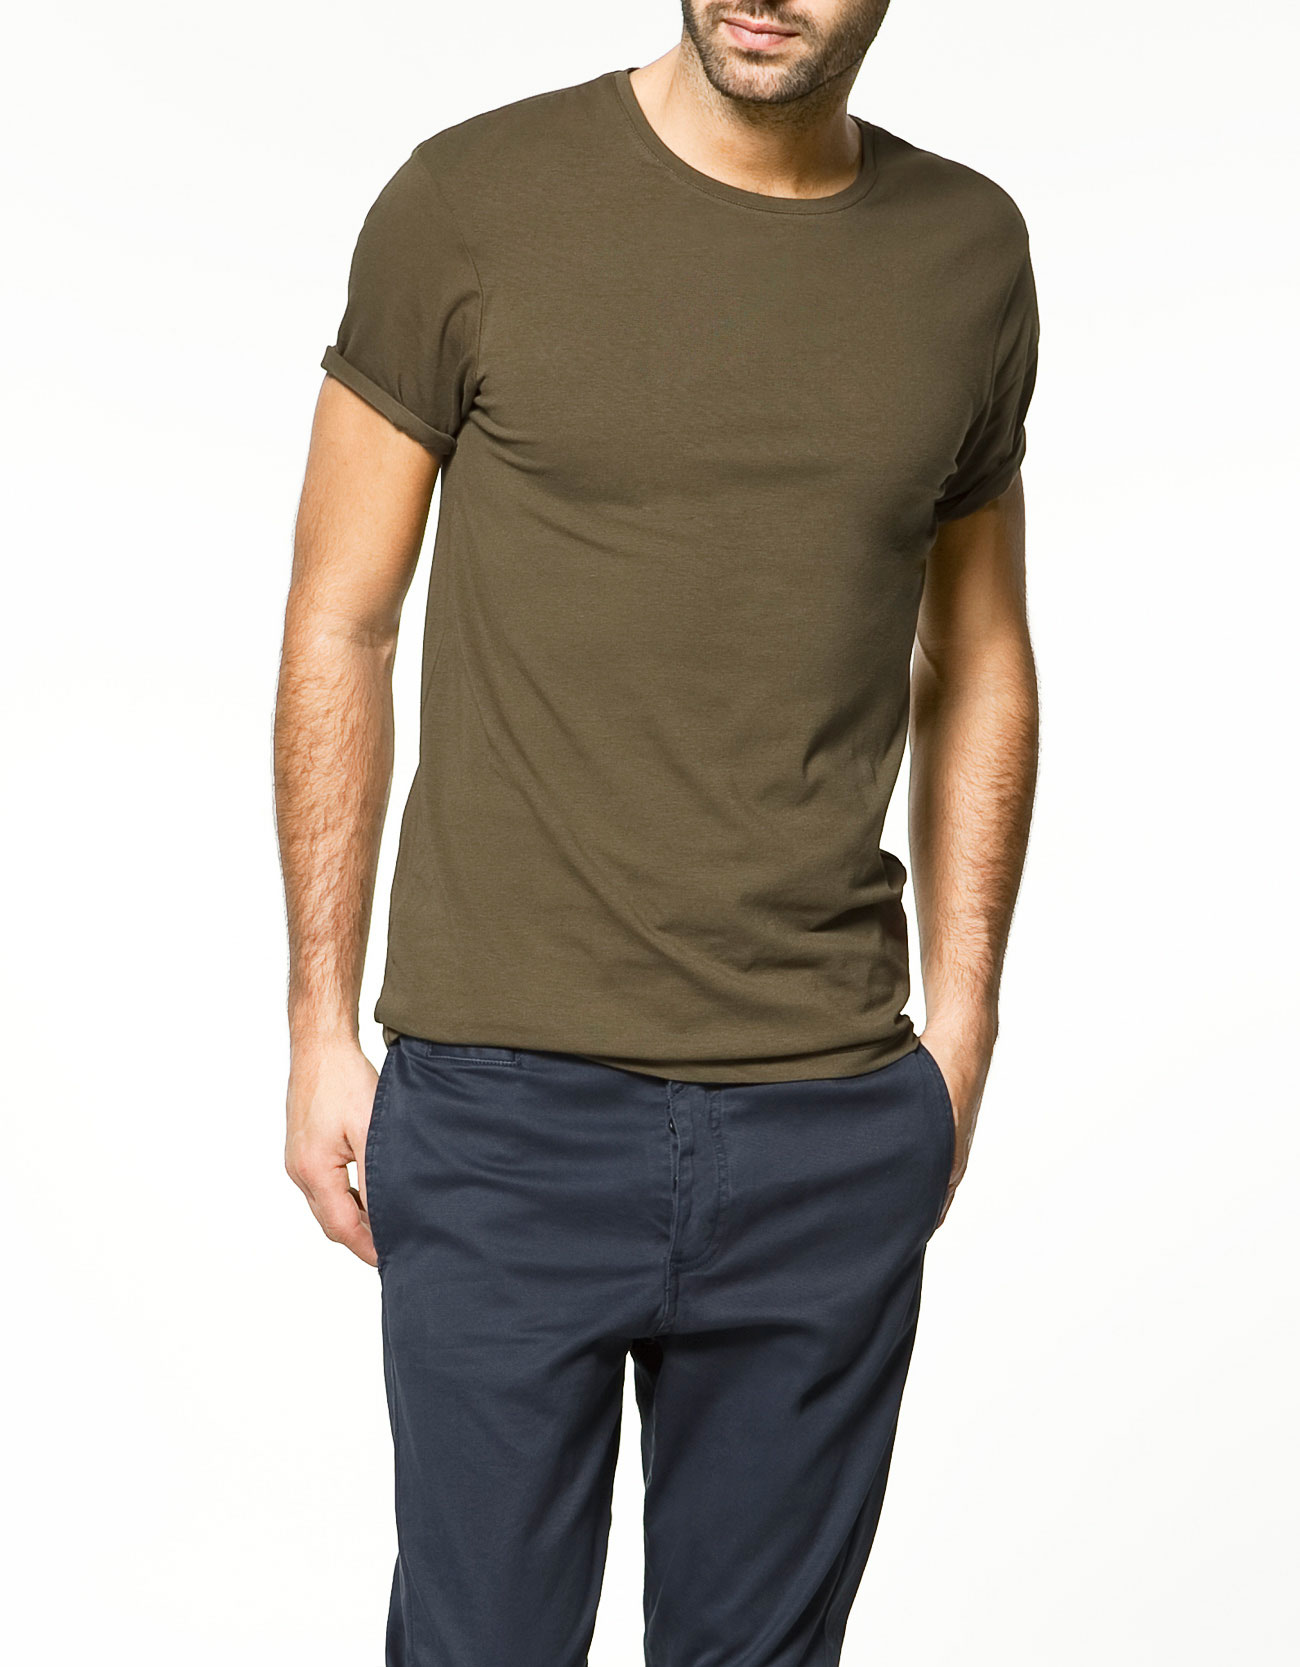 zara slim fit t shirt in khaki for men lyst. Black Bedroom Furniture Sets. Home Design Ideas